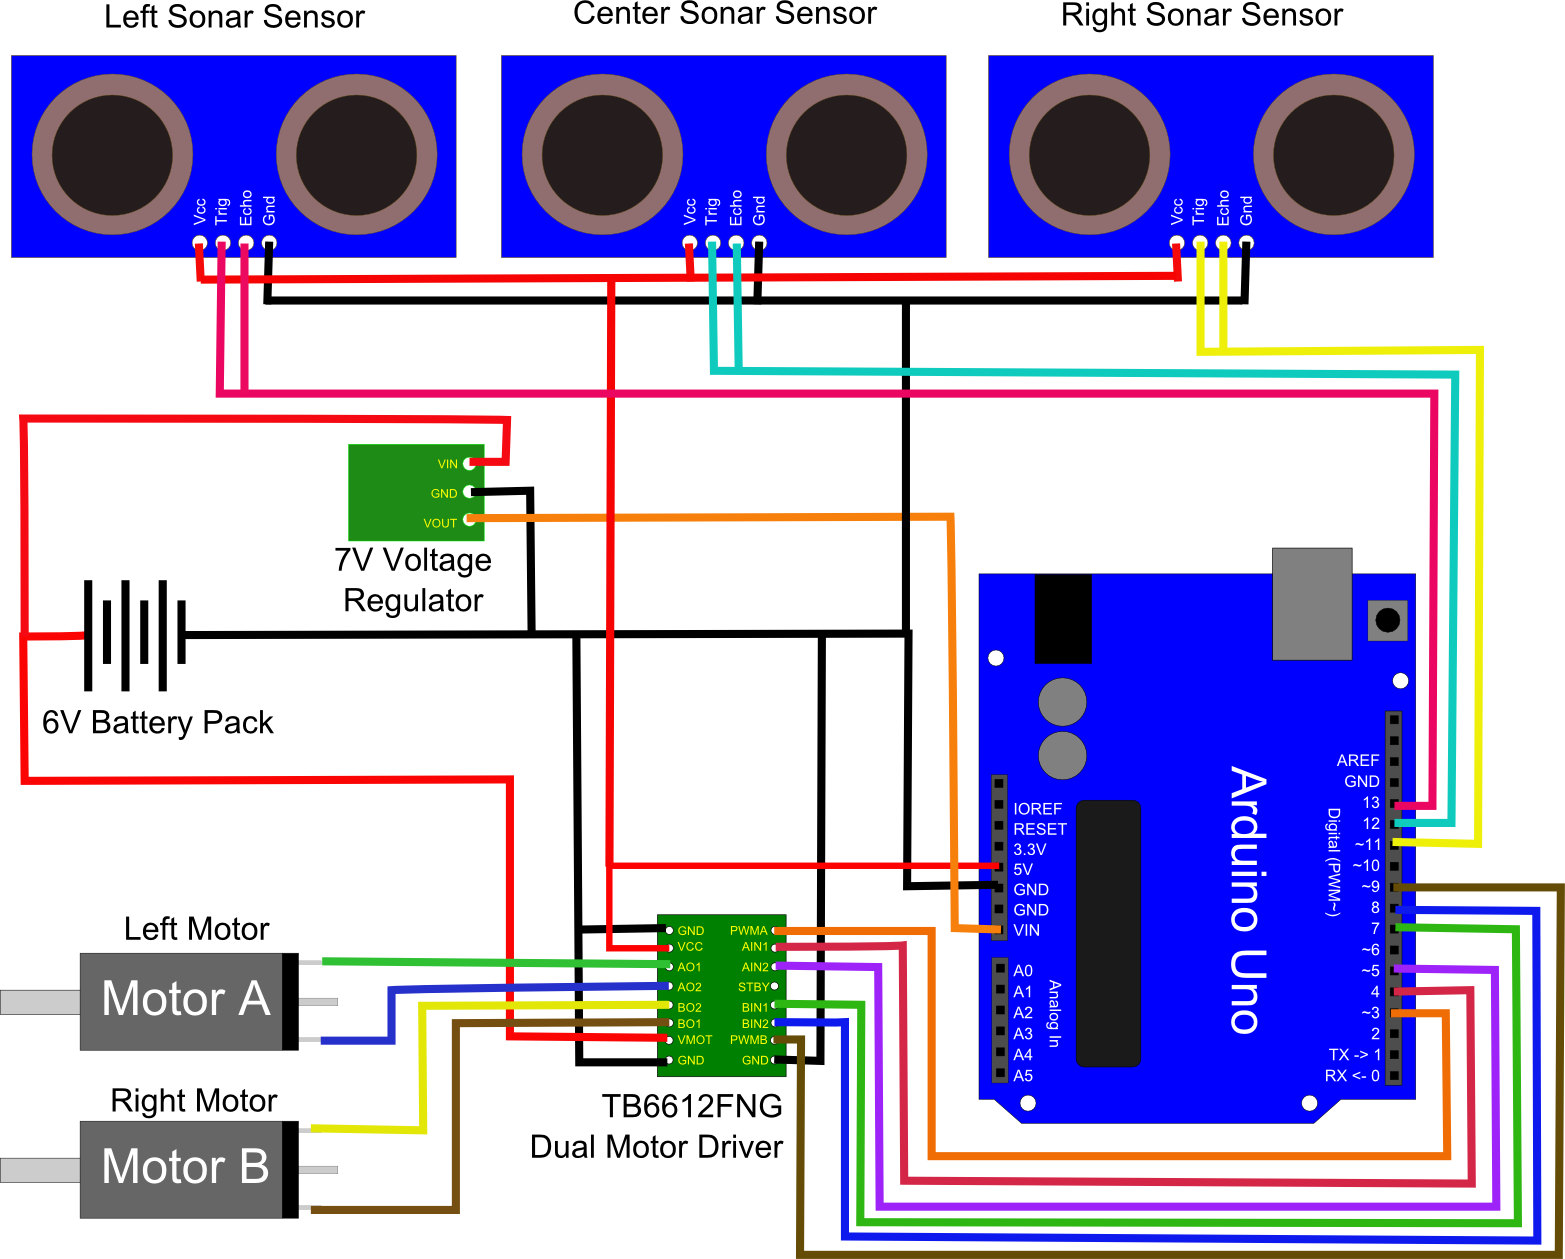 Wiring diagram for obstacle avoidance